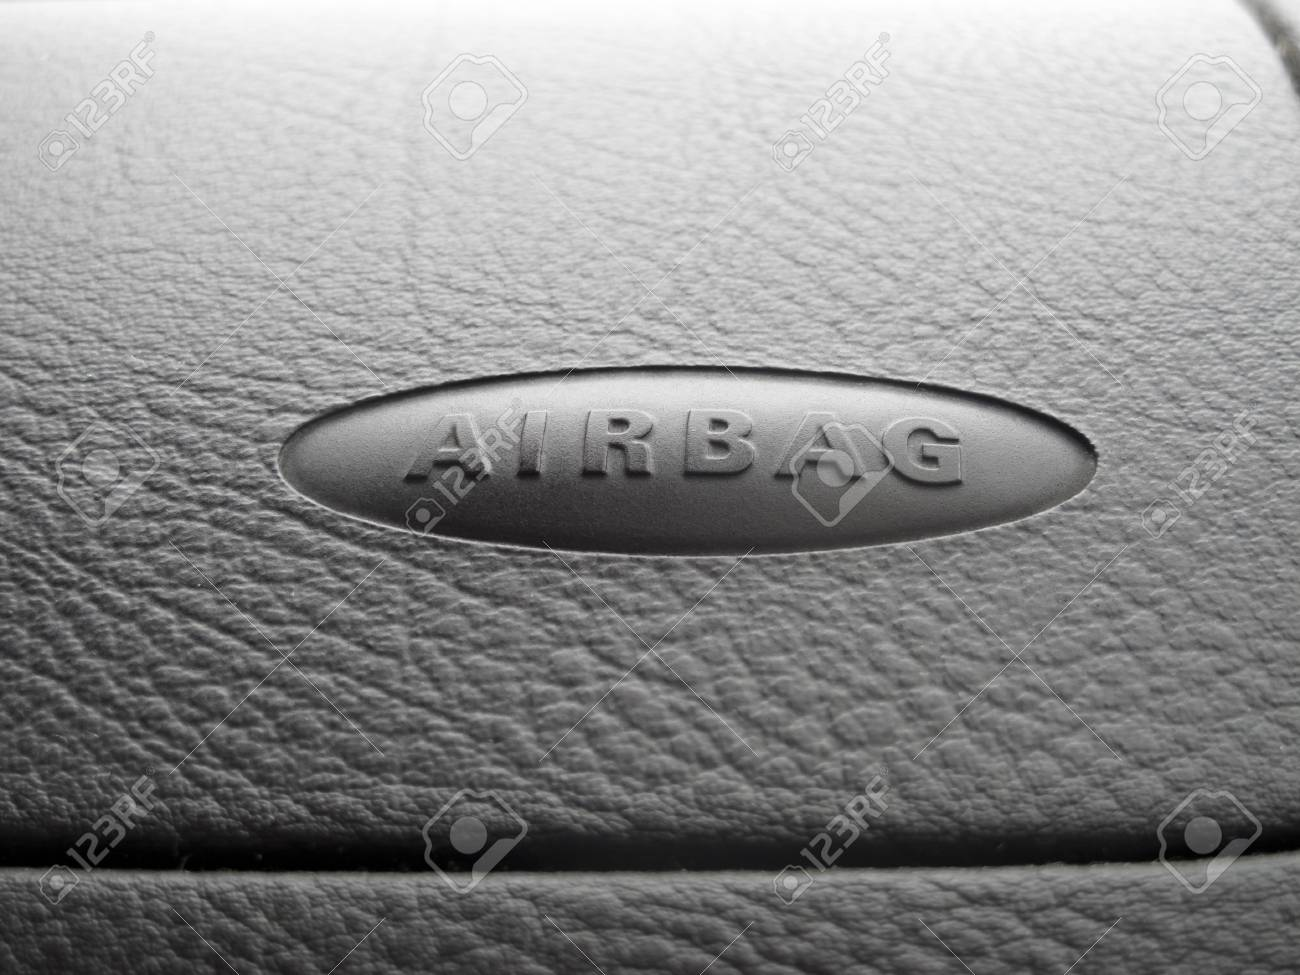 Macro of an airbag sign on a dashboard  Photo with copyspace Stock Photo - 17011206